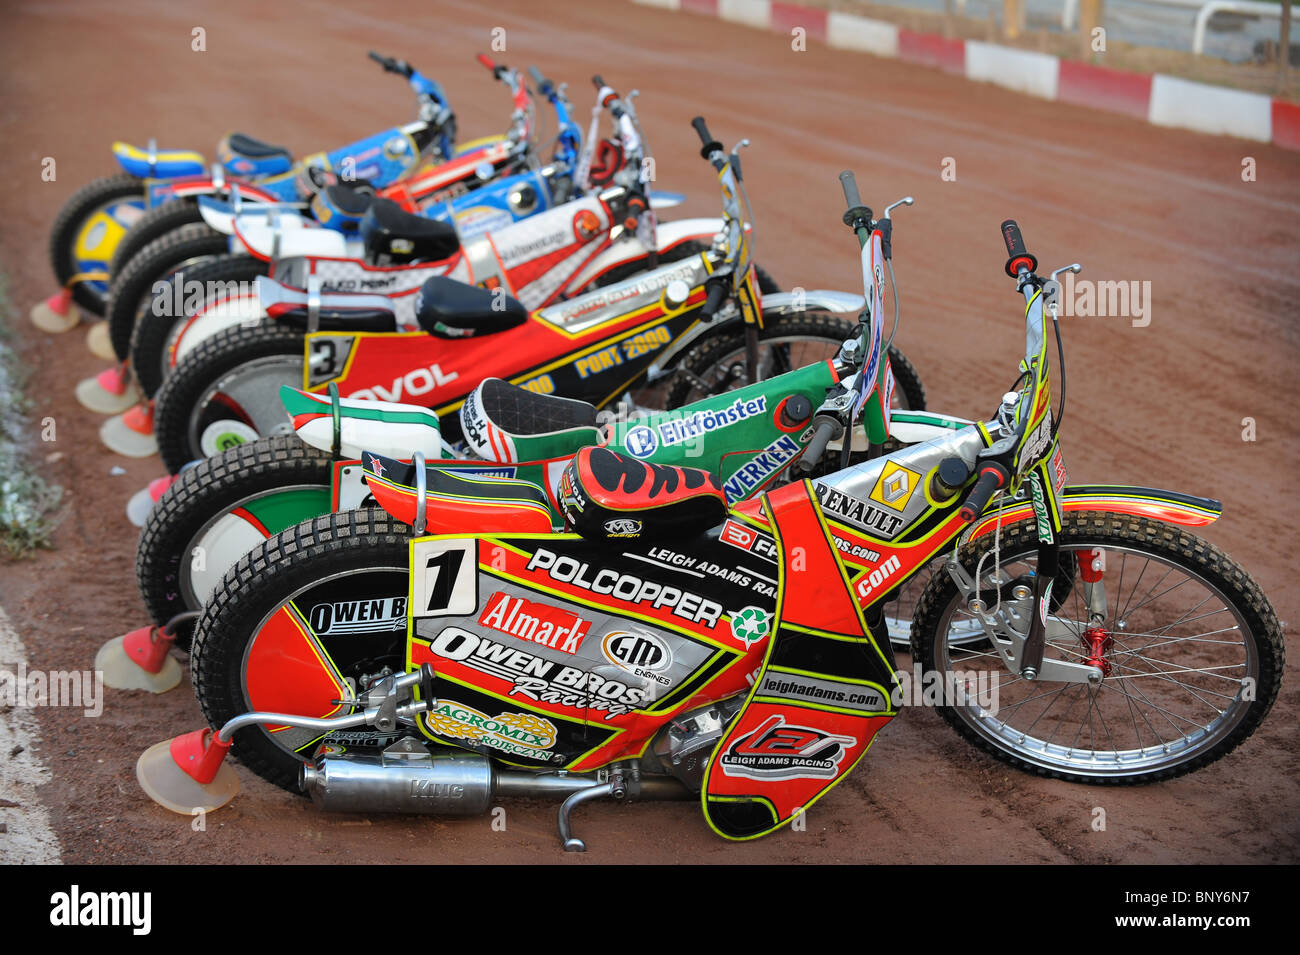 Speedway Motorcycle Racing Bikes: Speedway Bikes Are Lined Up On The Track Before Racing